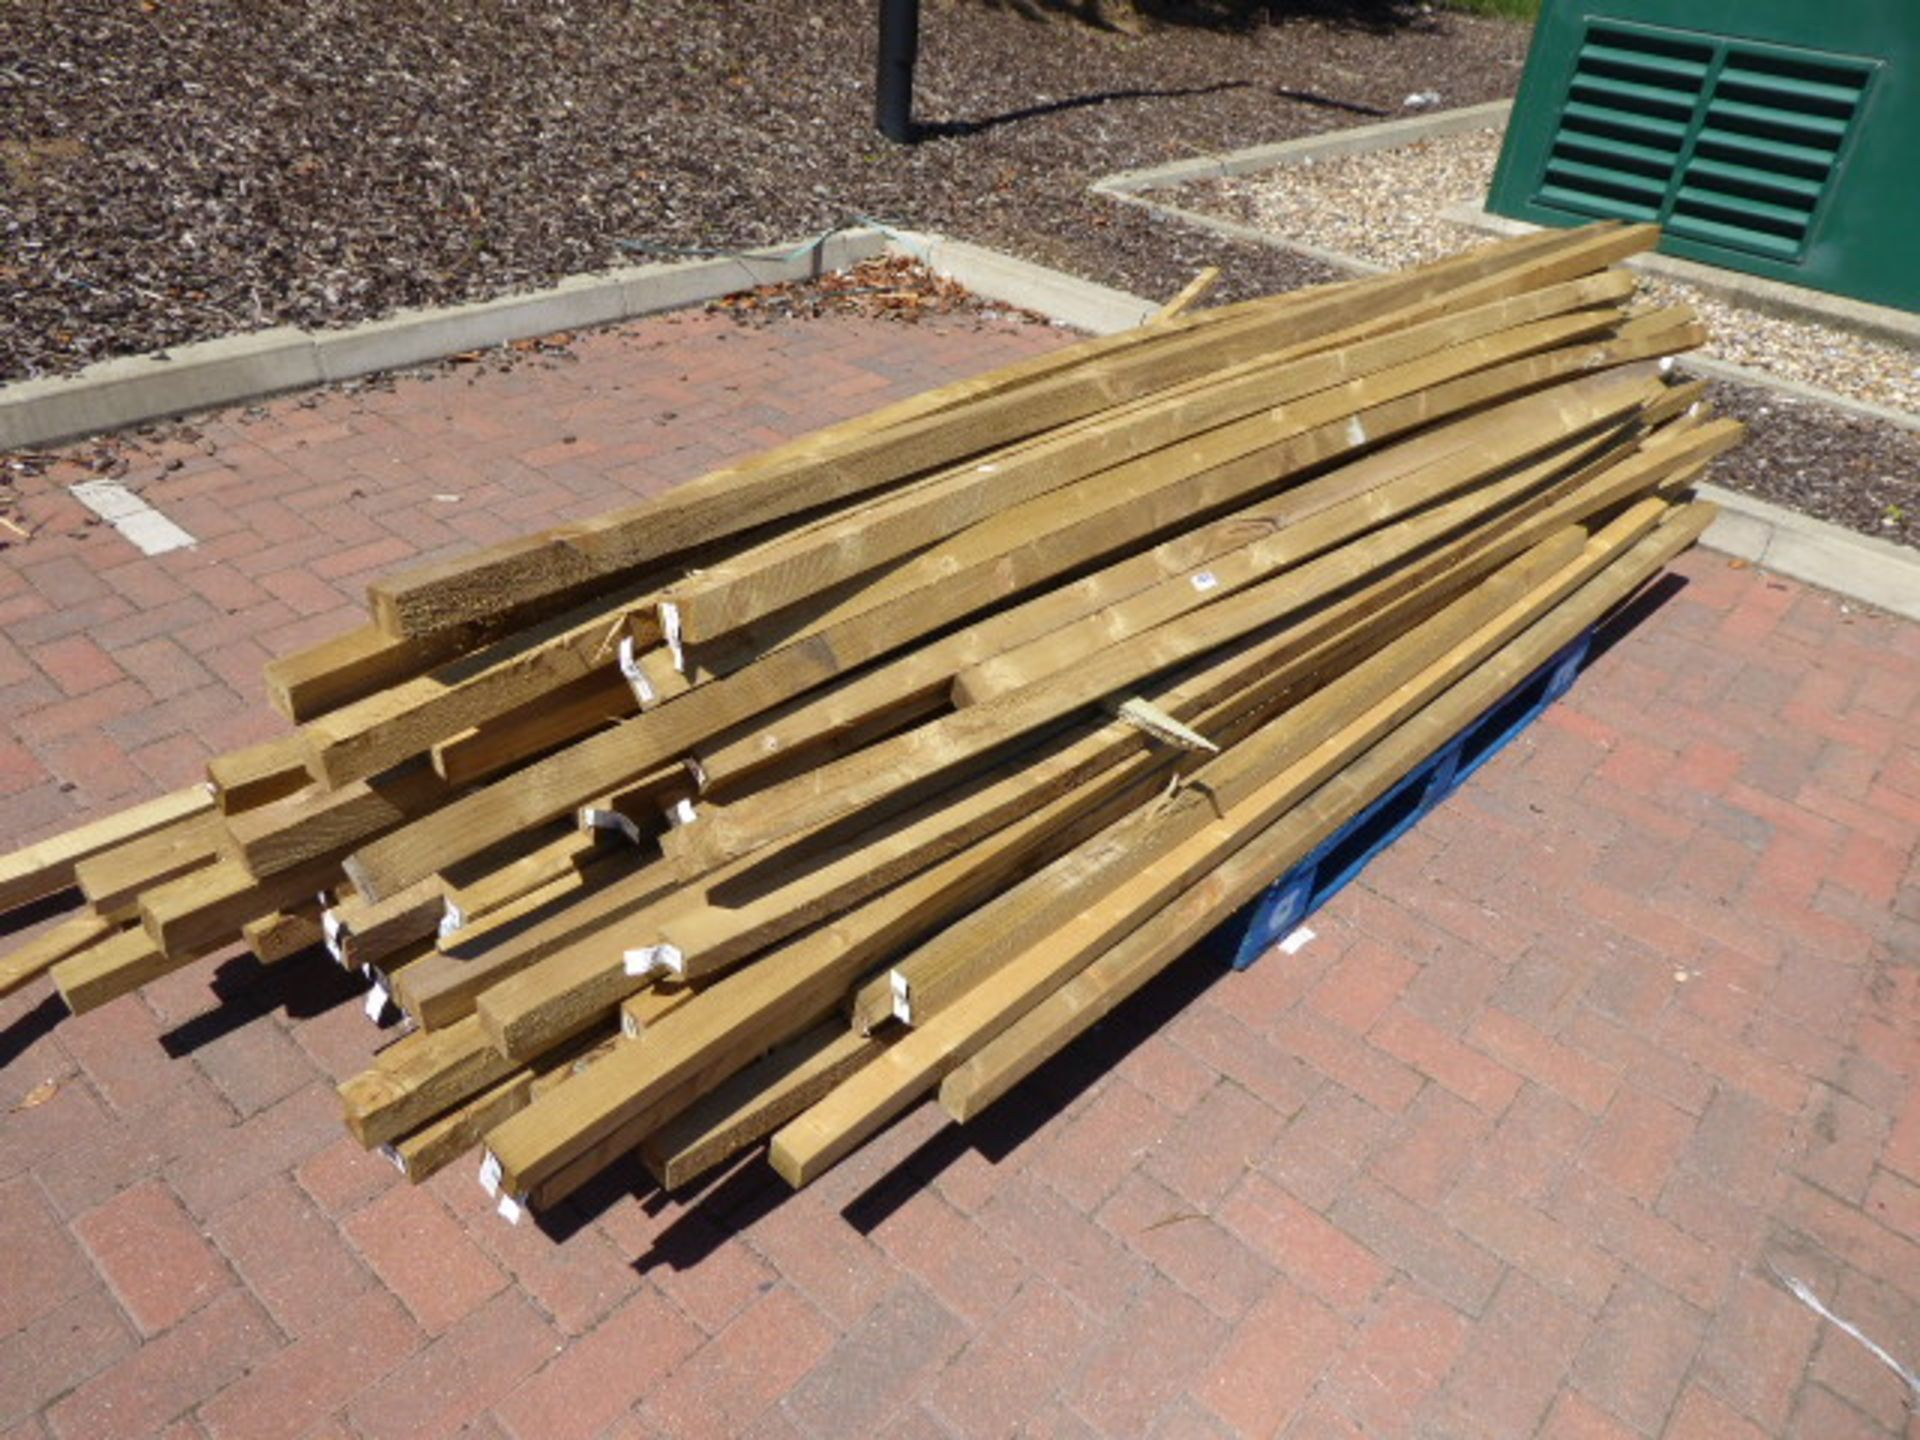 Lot 4129 - 4134 Pallet of assorted timber